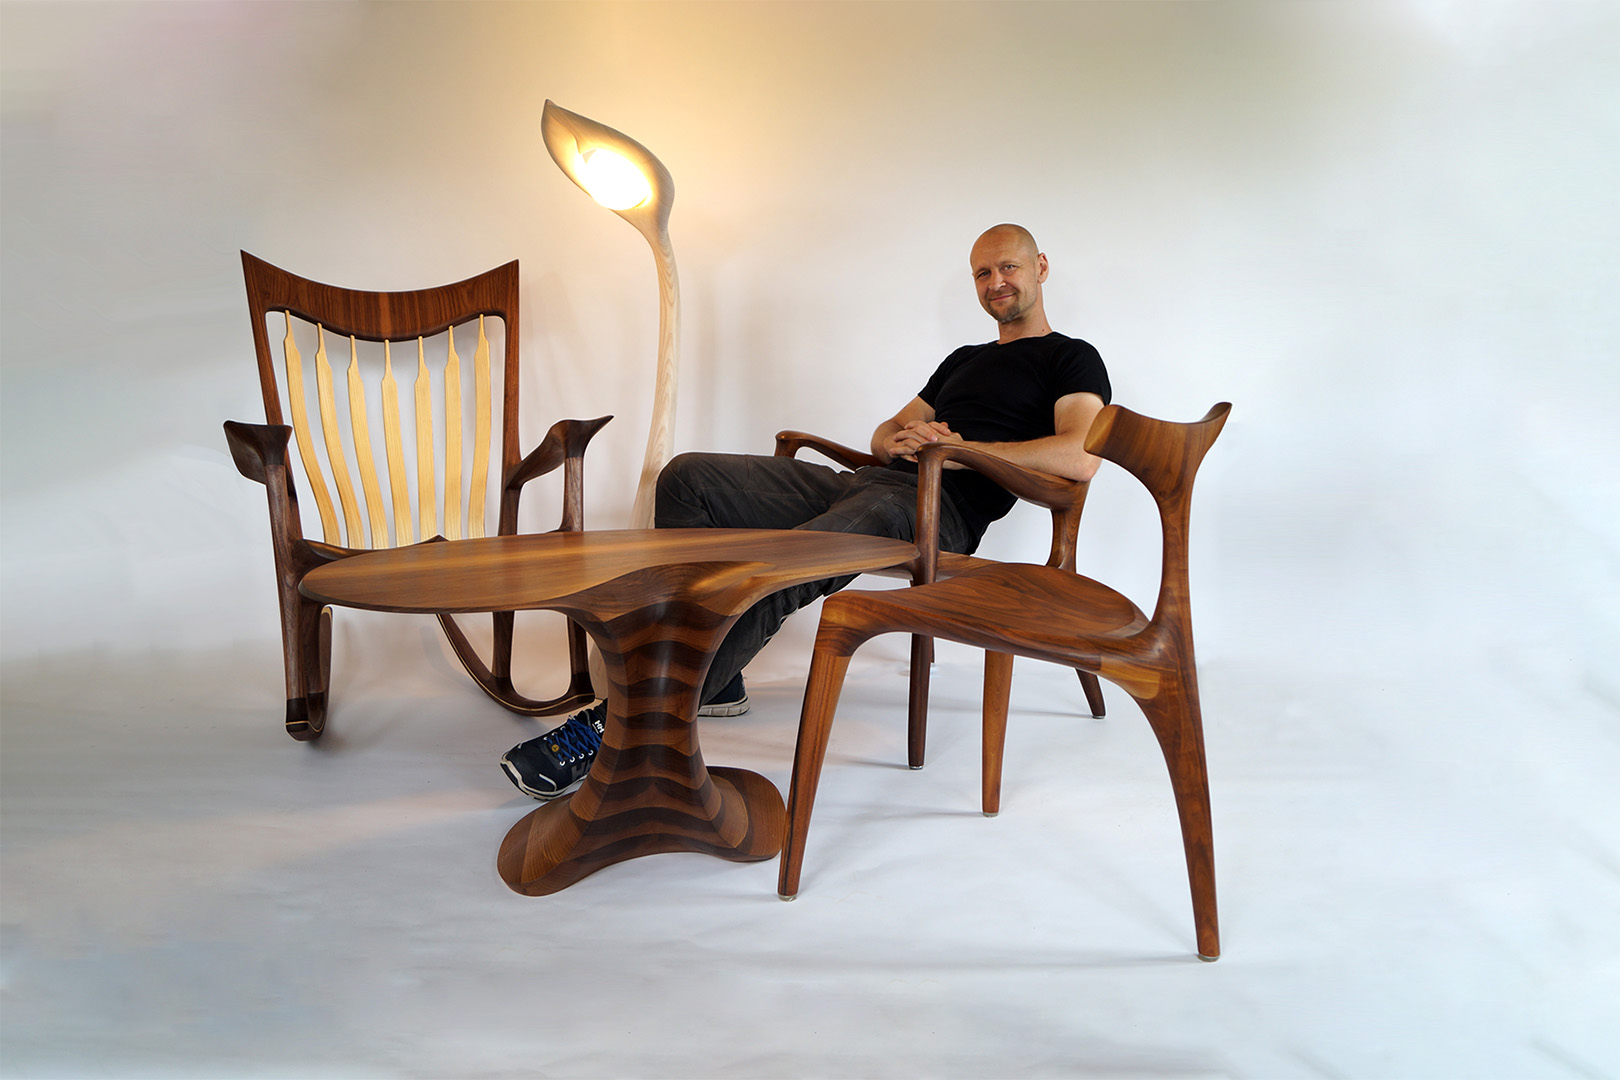 Morten with some of his most popular pieces: the American-inspired Low Rocker, the Low Back Lounge Chair and the Triplex Dining Chair, accompanied by the Sunflower light and his Columnae table.